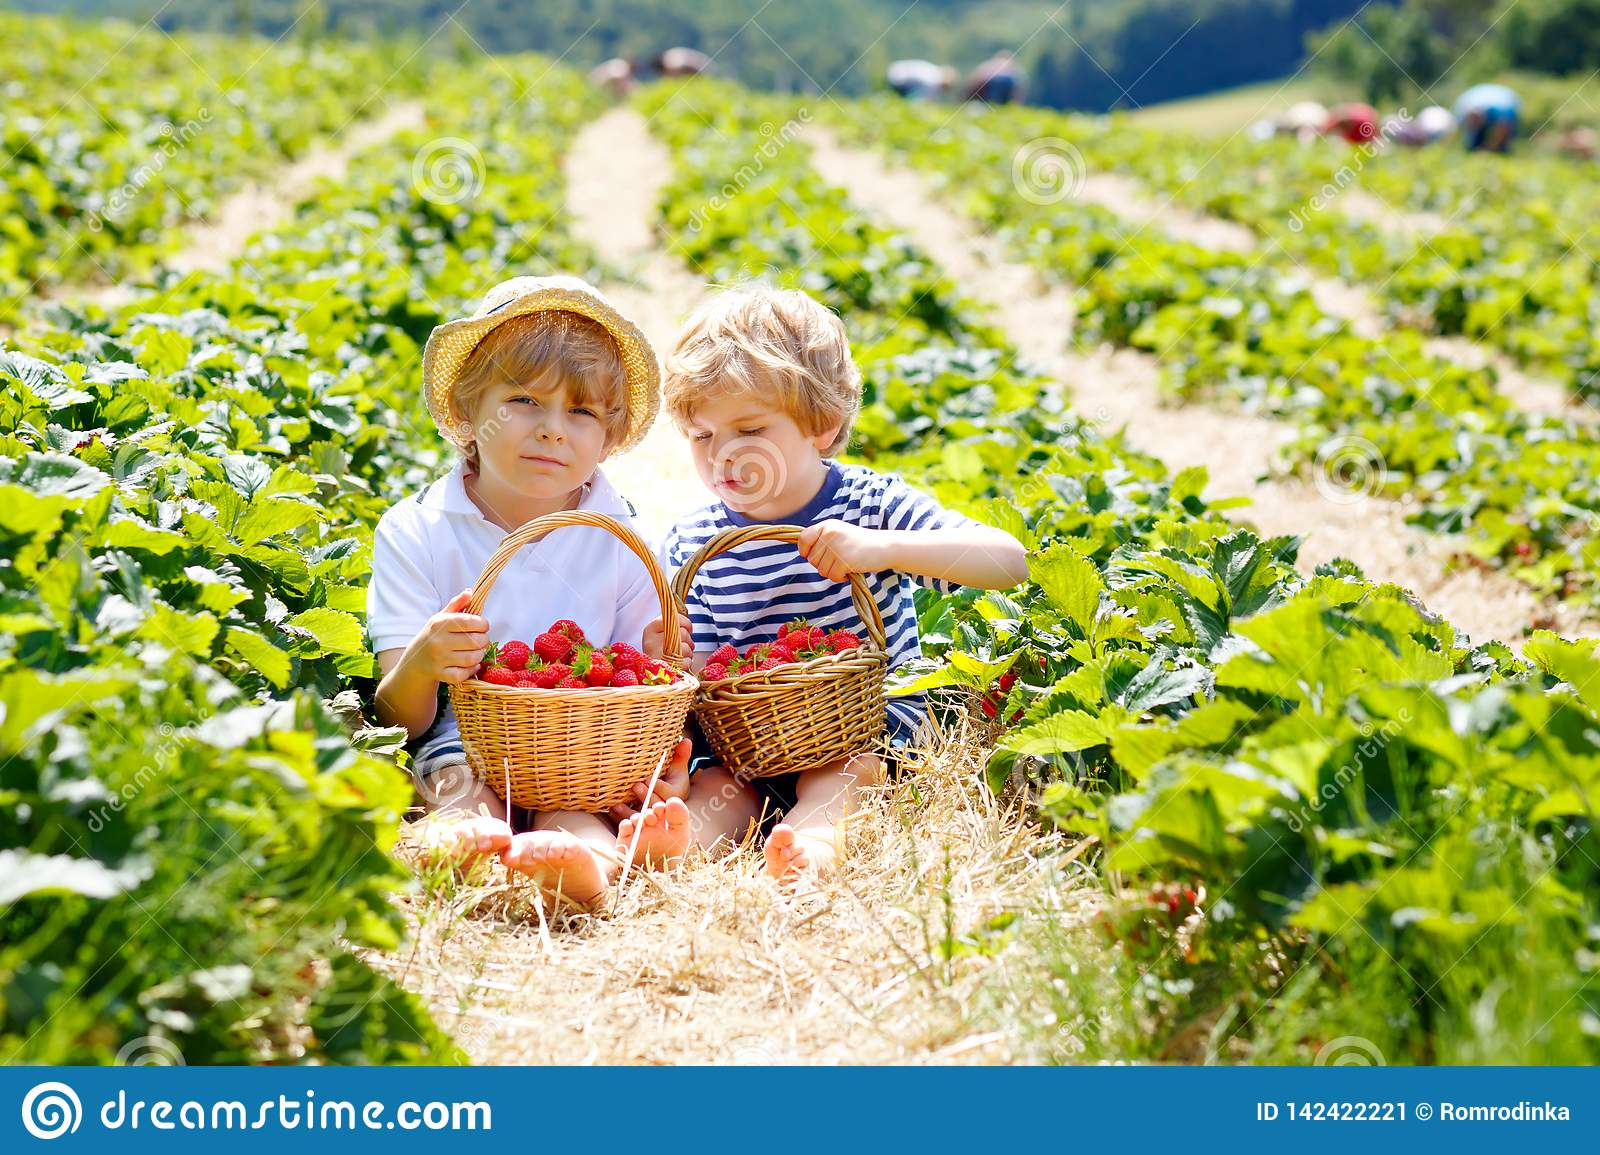 Two little sibling kids boys having fun on strawberry farm in summer. Children, cute twins eating healthy organic food